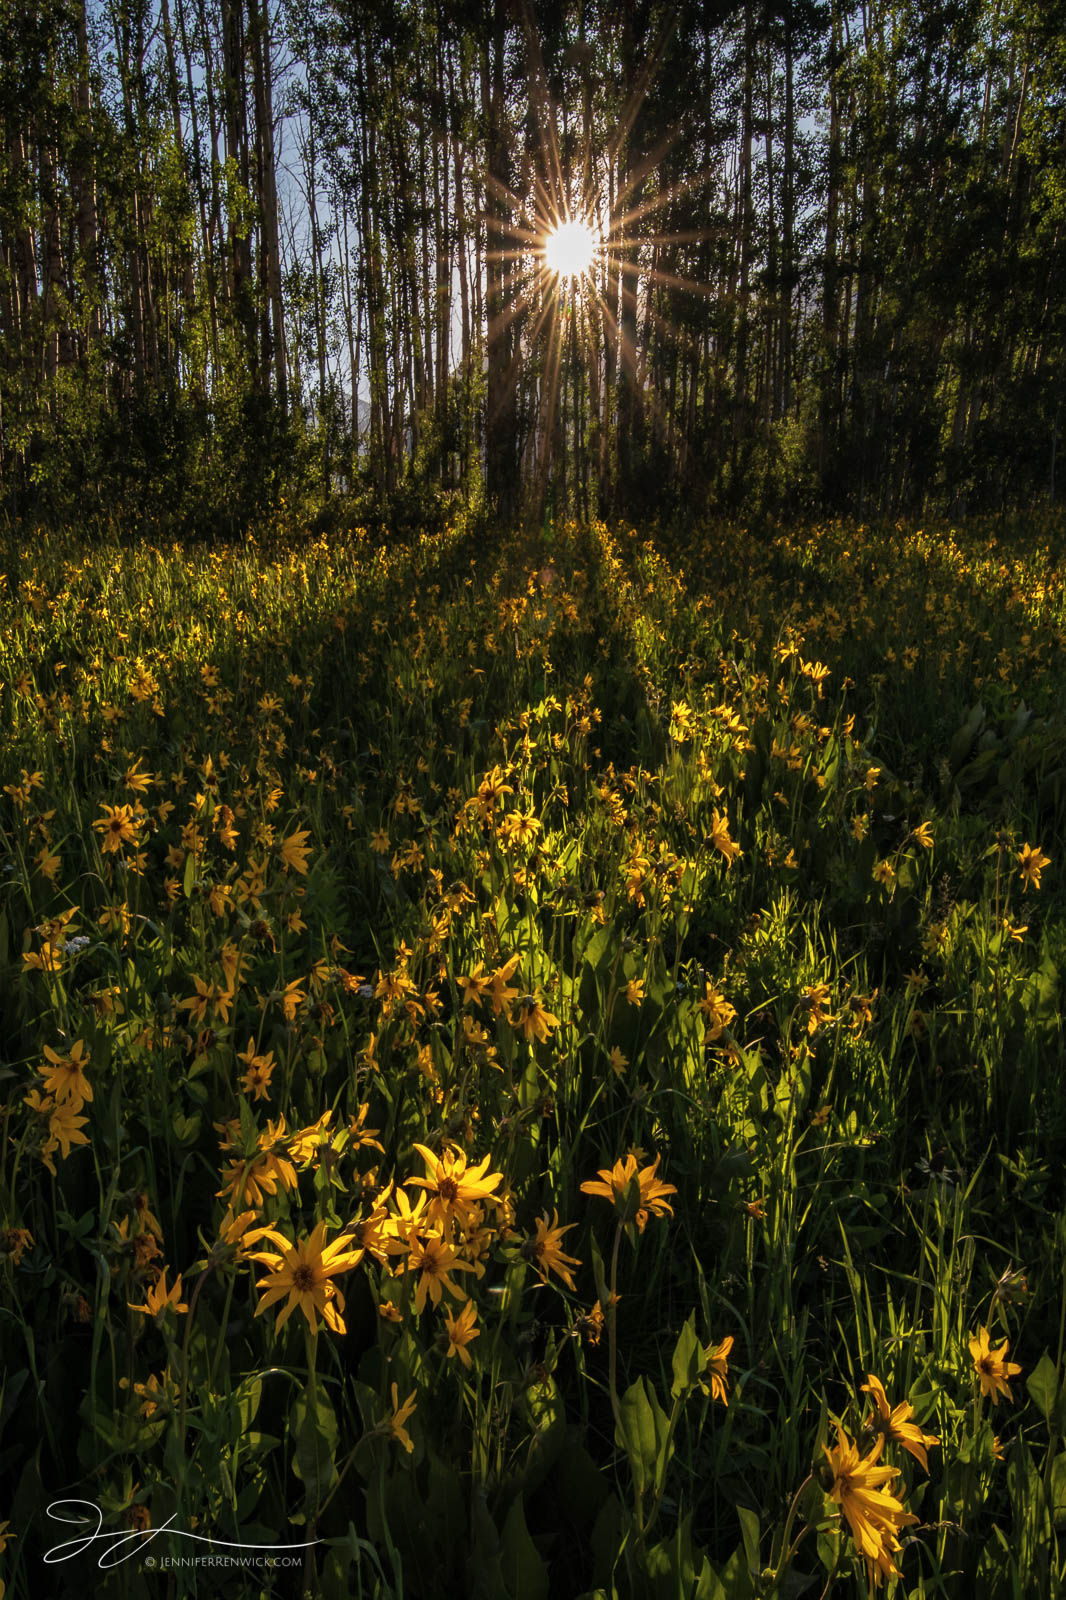 Mule's Ears sunflowers greet the sunrise through the trees in a mountain meadow.